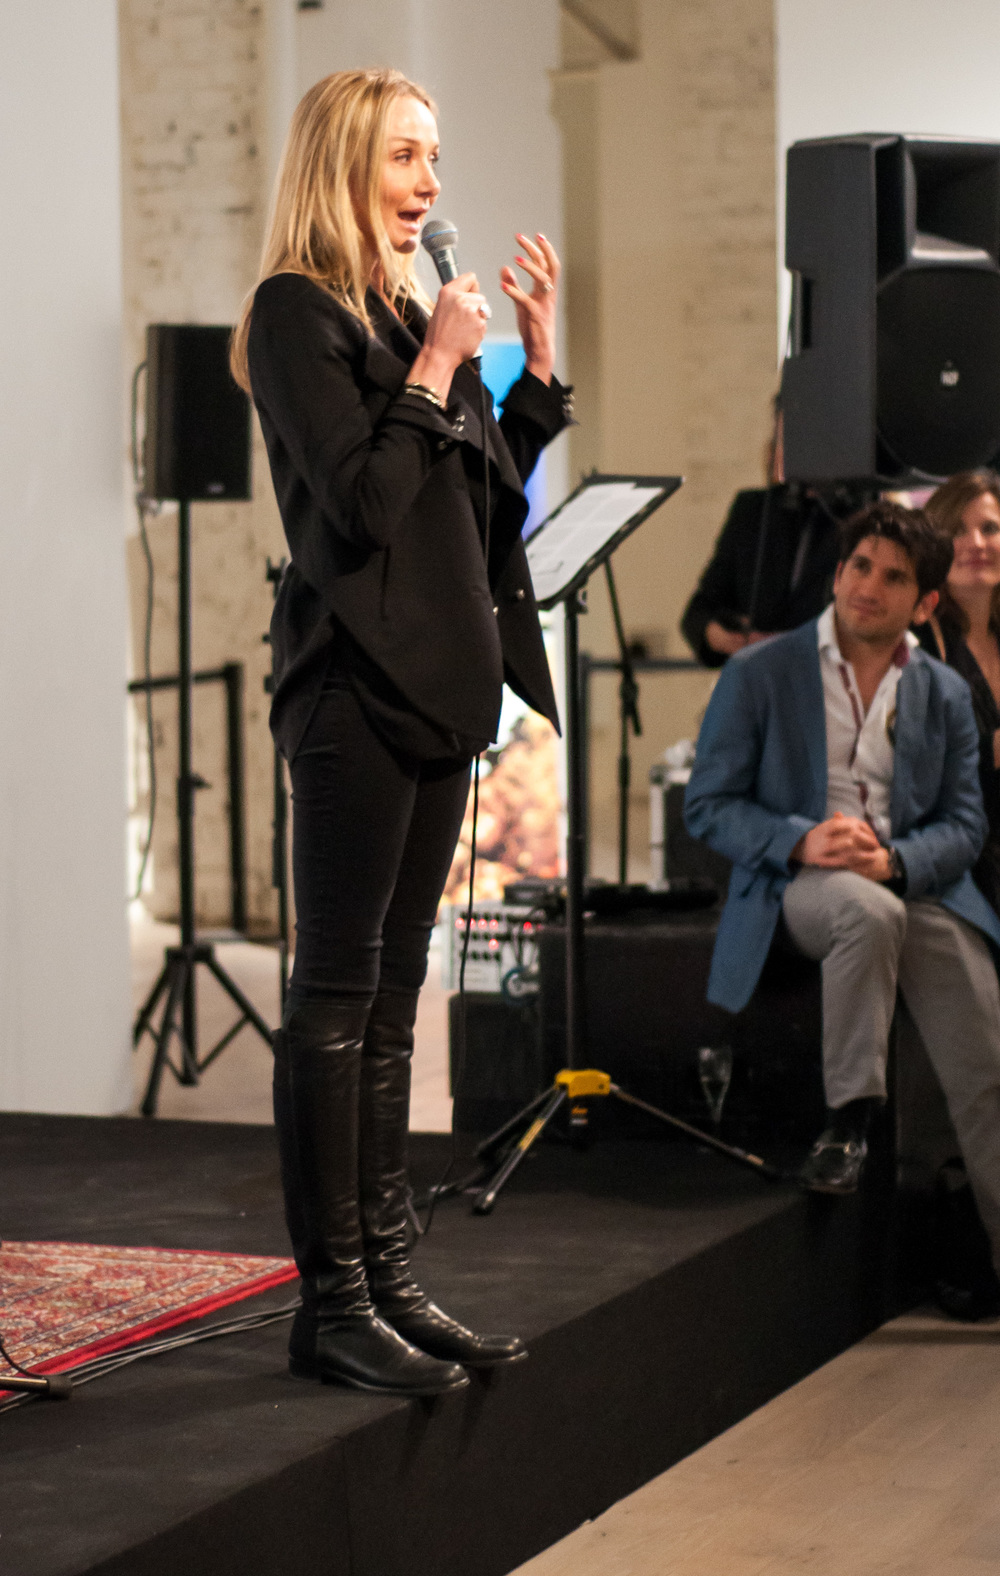 Anna Bruce stitch and oceana 2014 (61 of 85).jpg